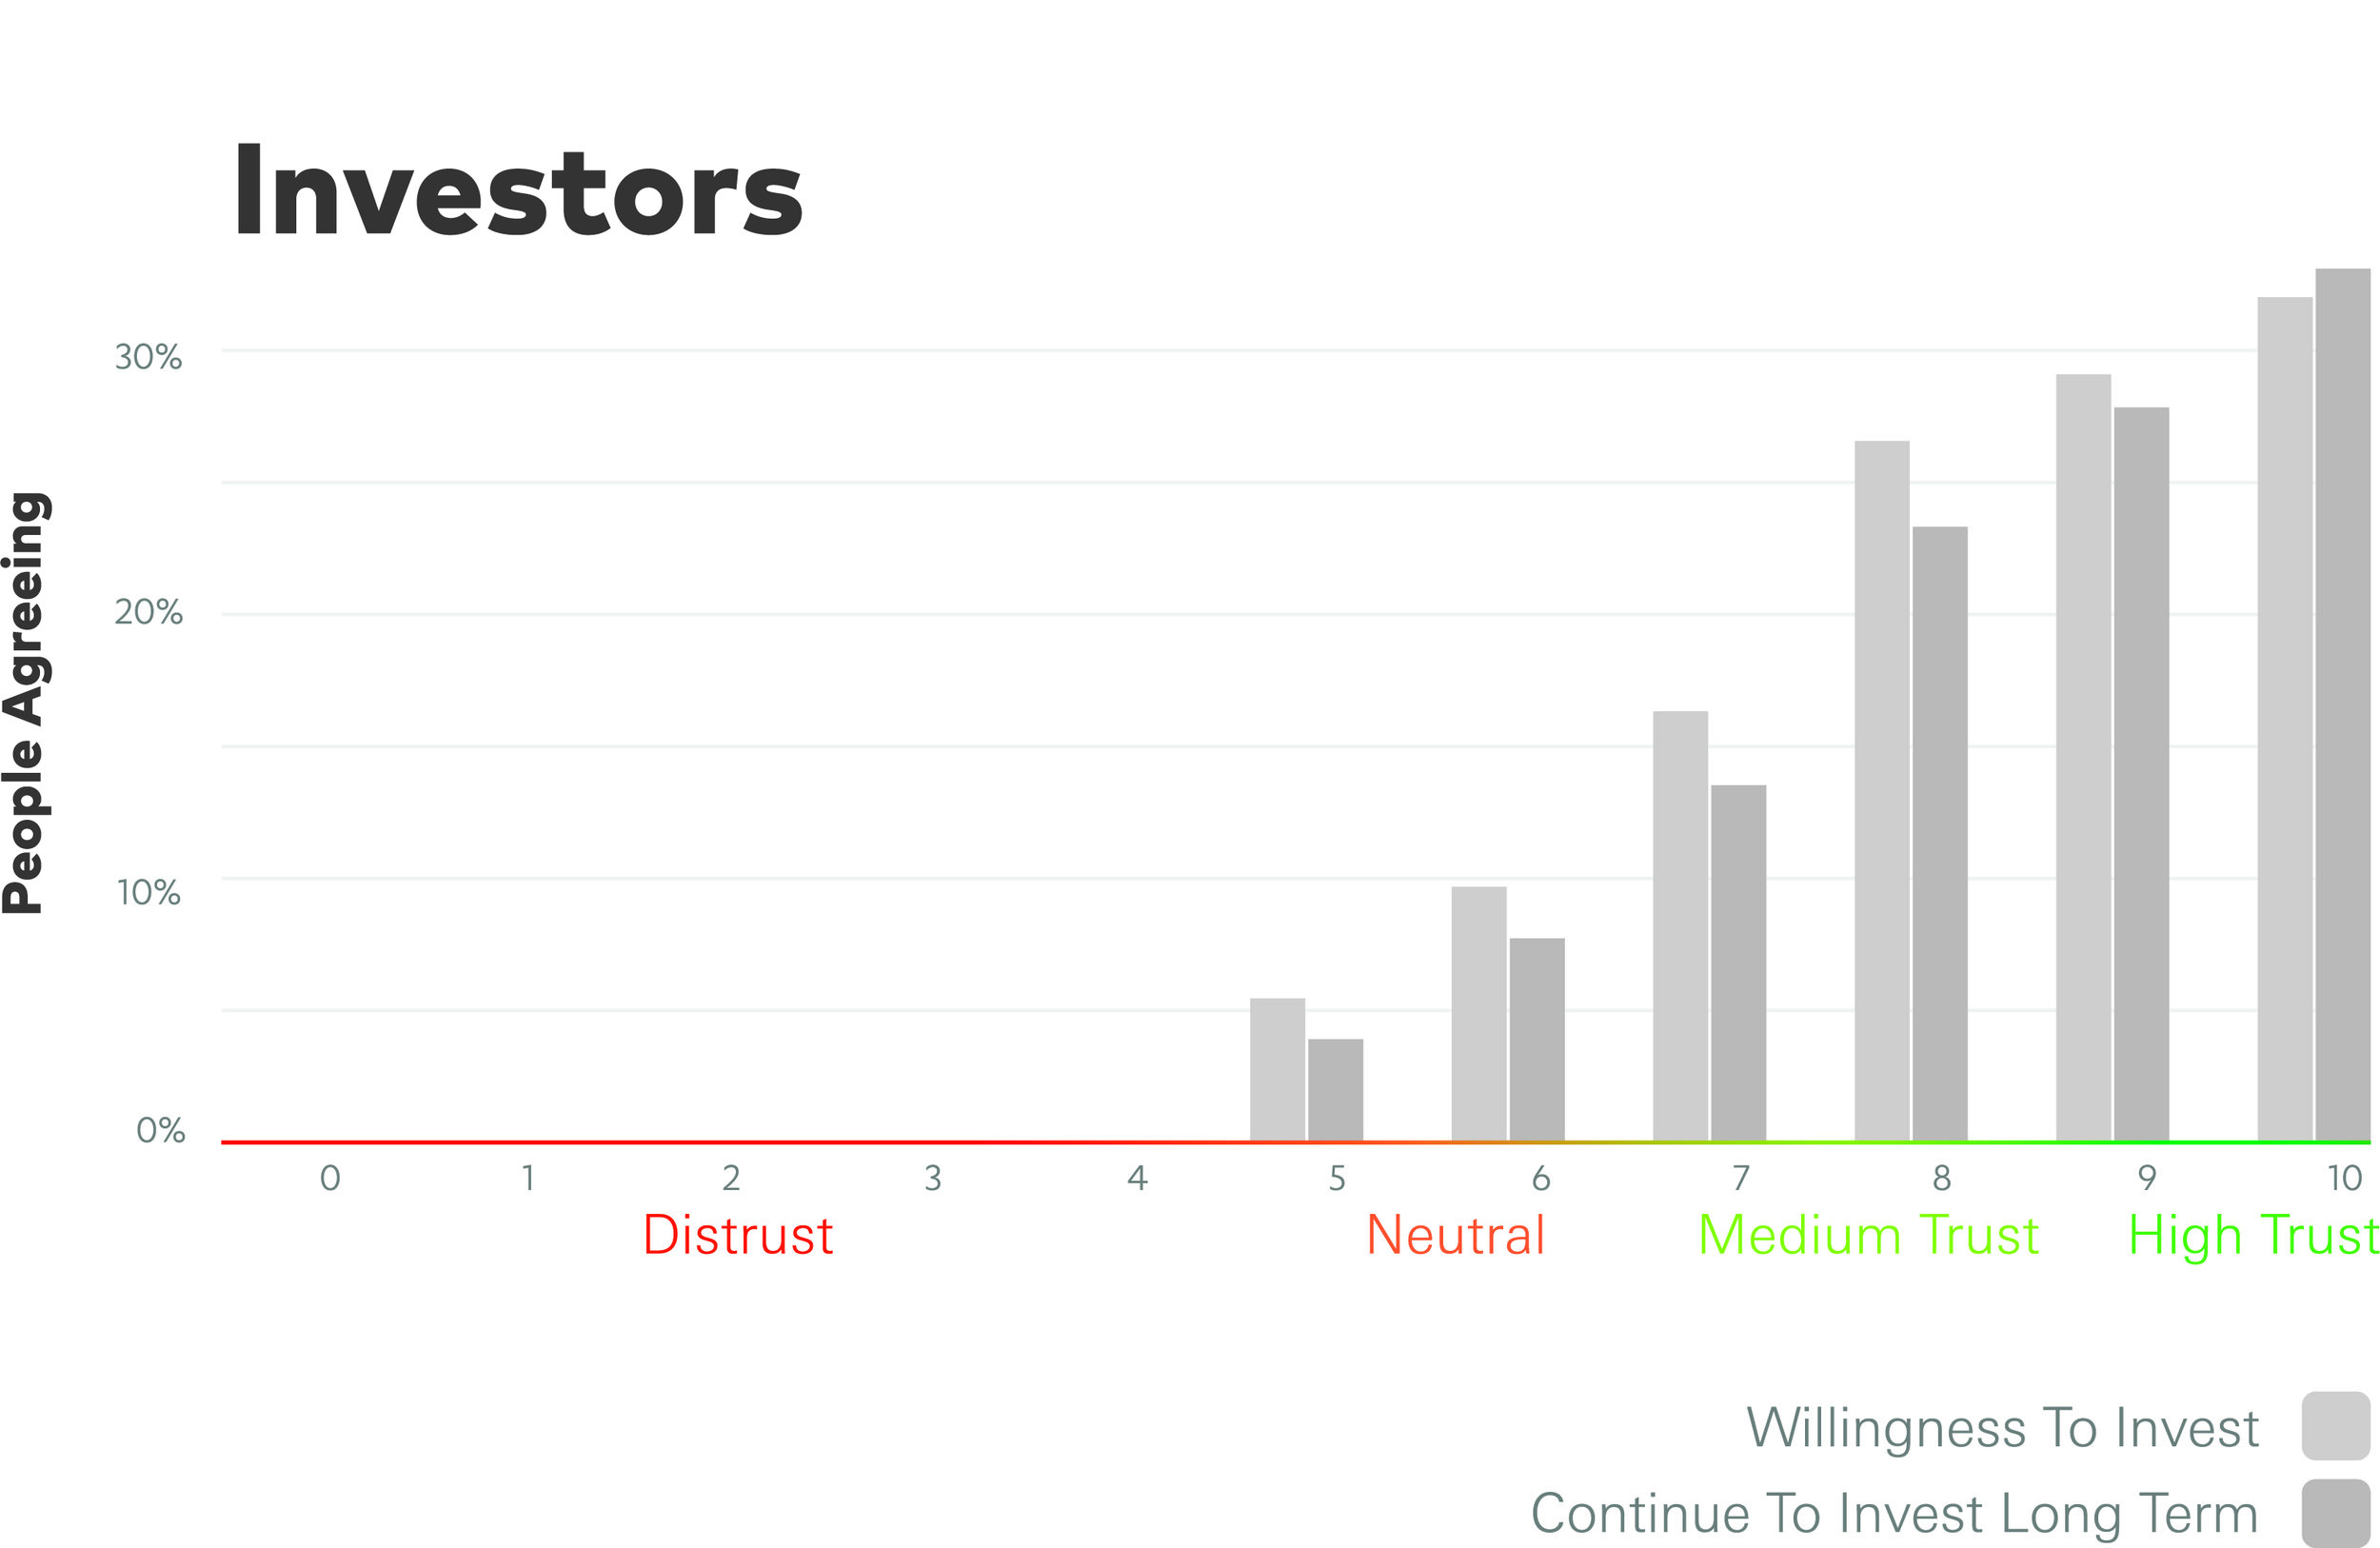 Mext_Consulting_Firm_Melbourne_Trust_Trustify_Stepping_Chart_Investors.jpg